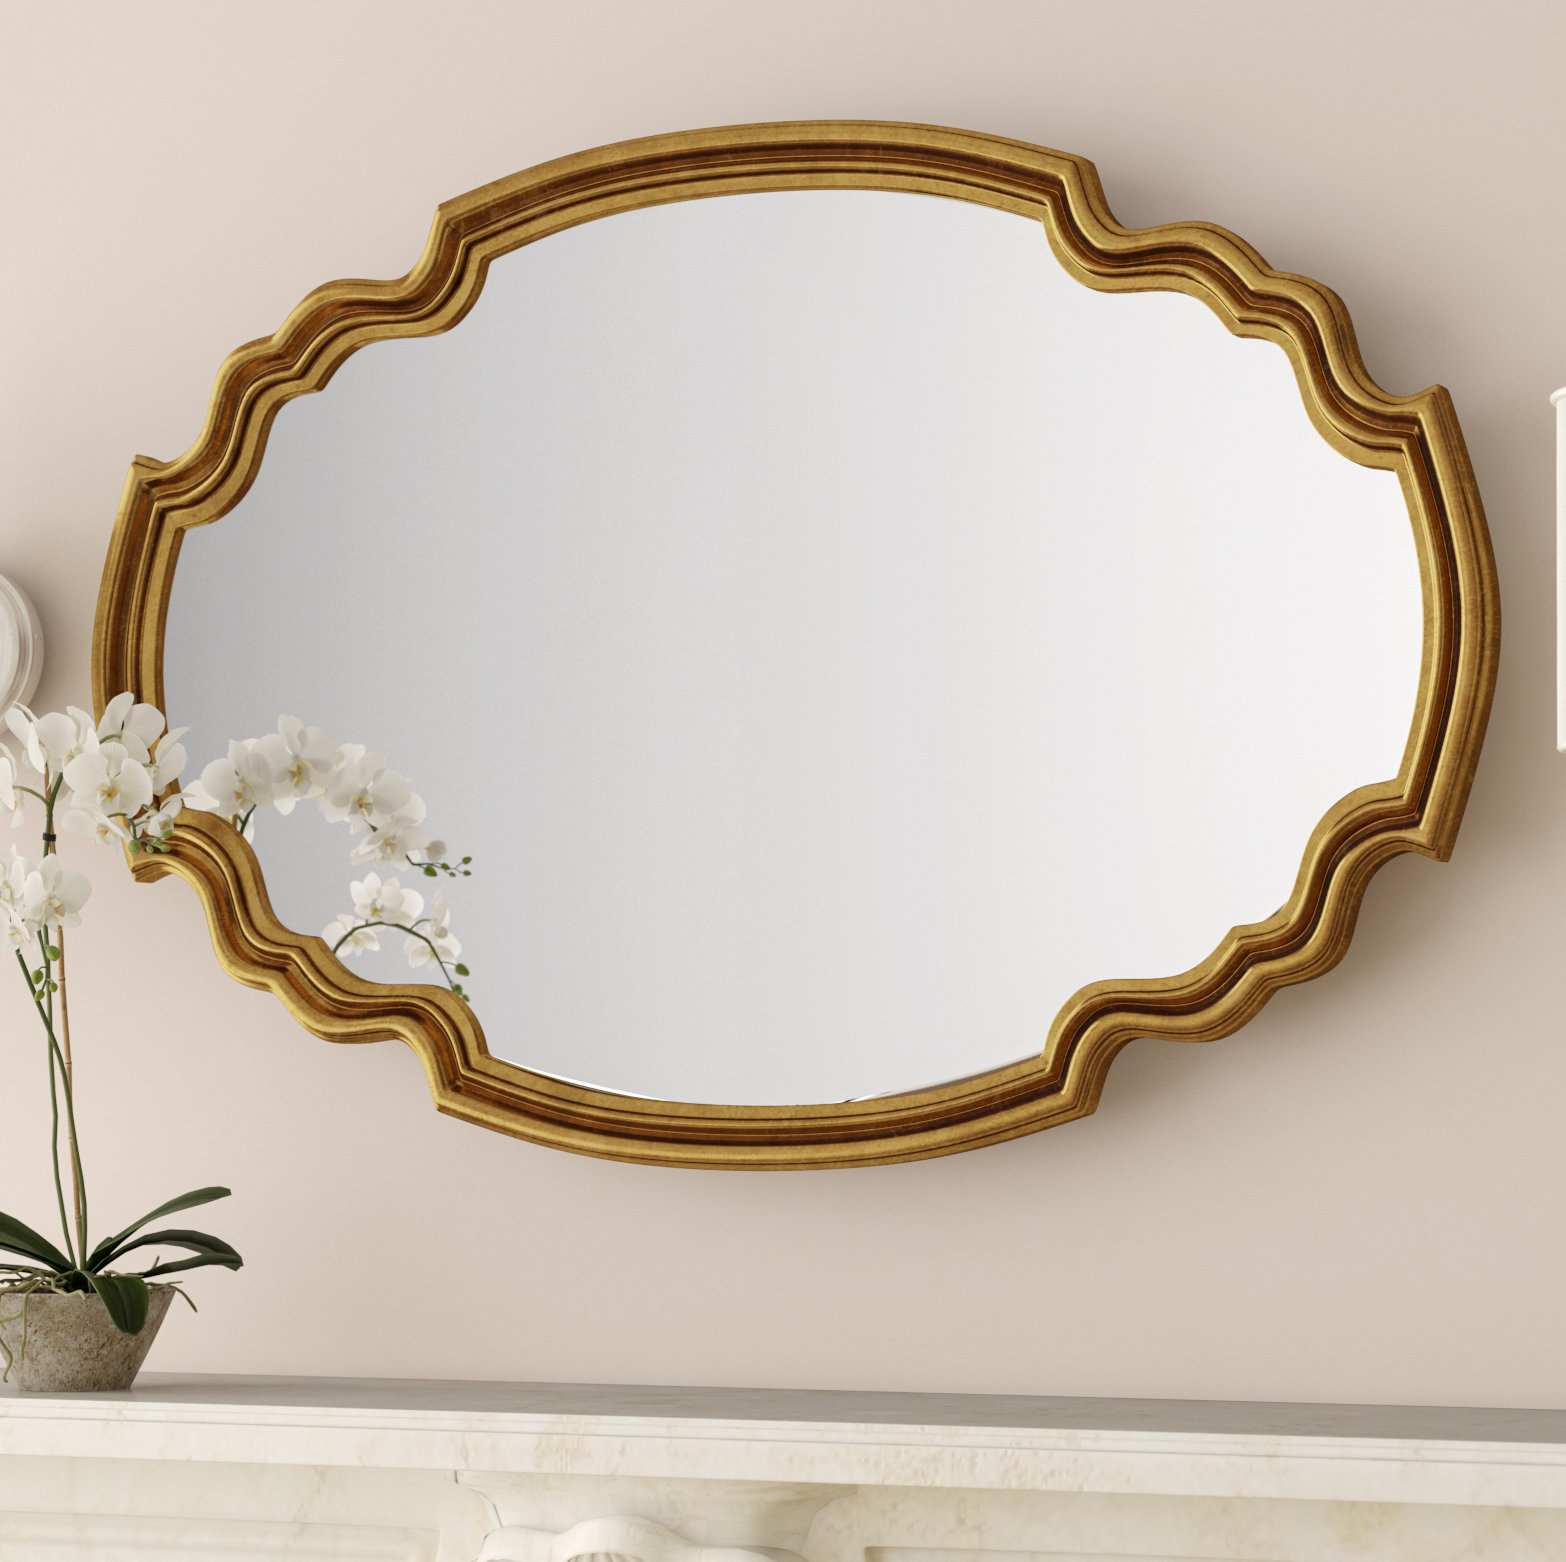 Broadmeadow Glam Accent Wall Mirror For Broadmeadow Glam Accent Wall Mirrors (View 2 of 20)